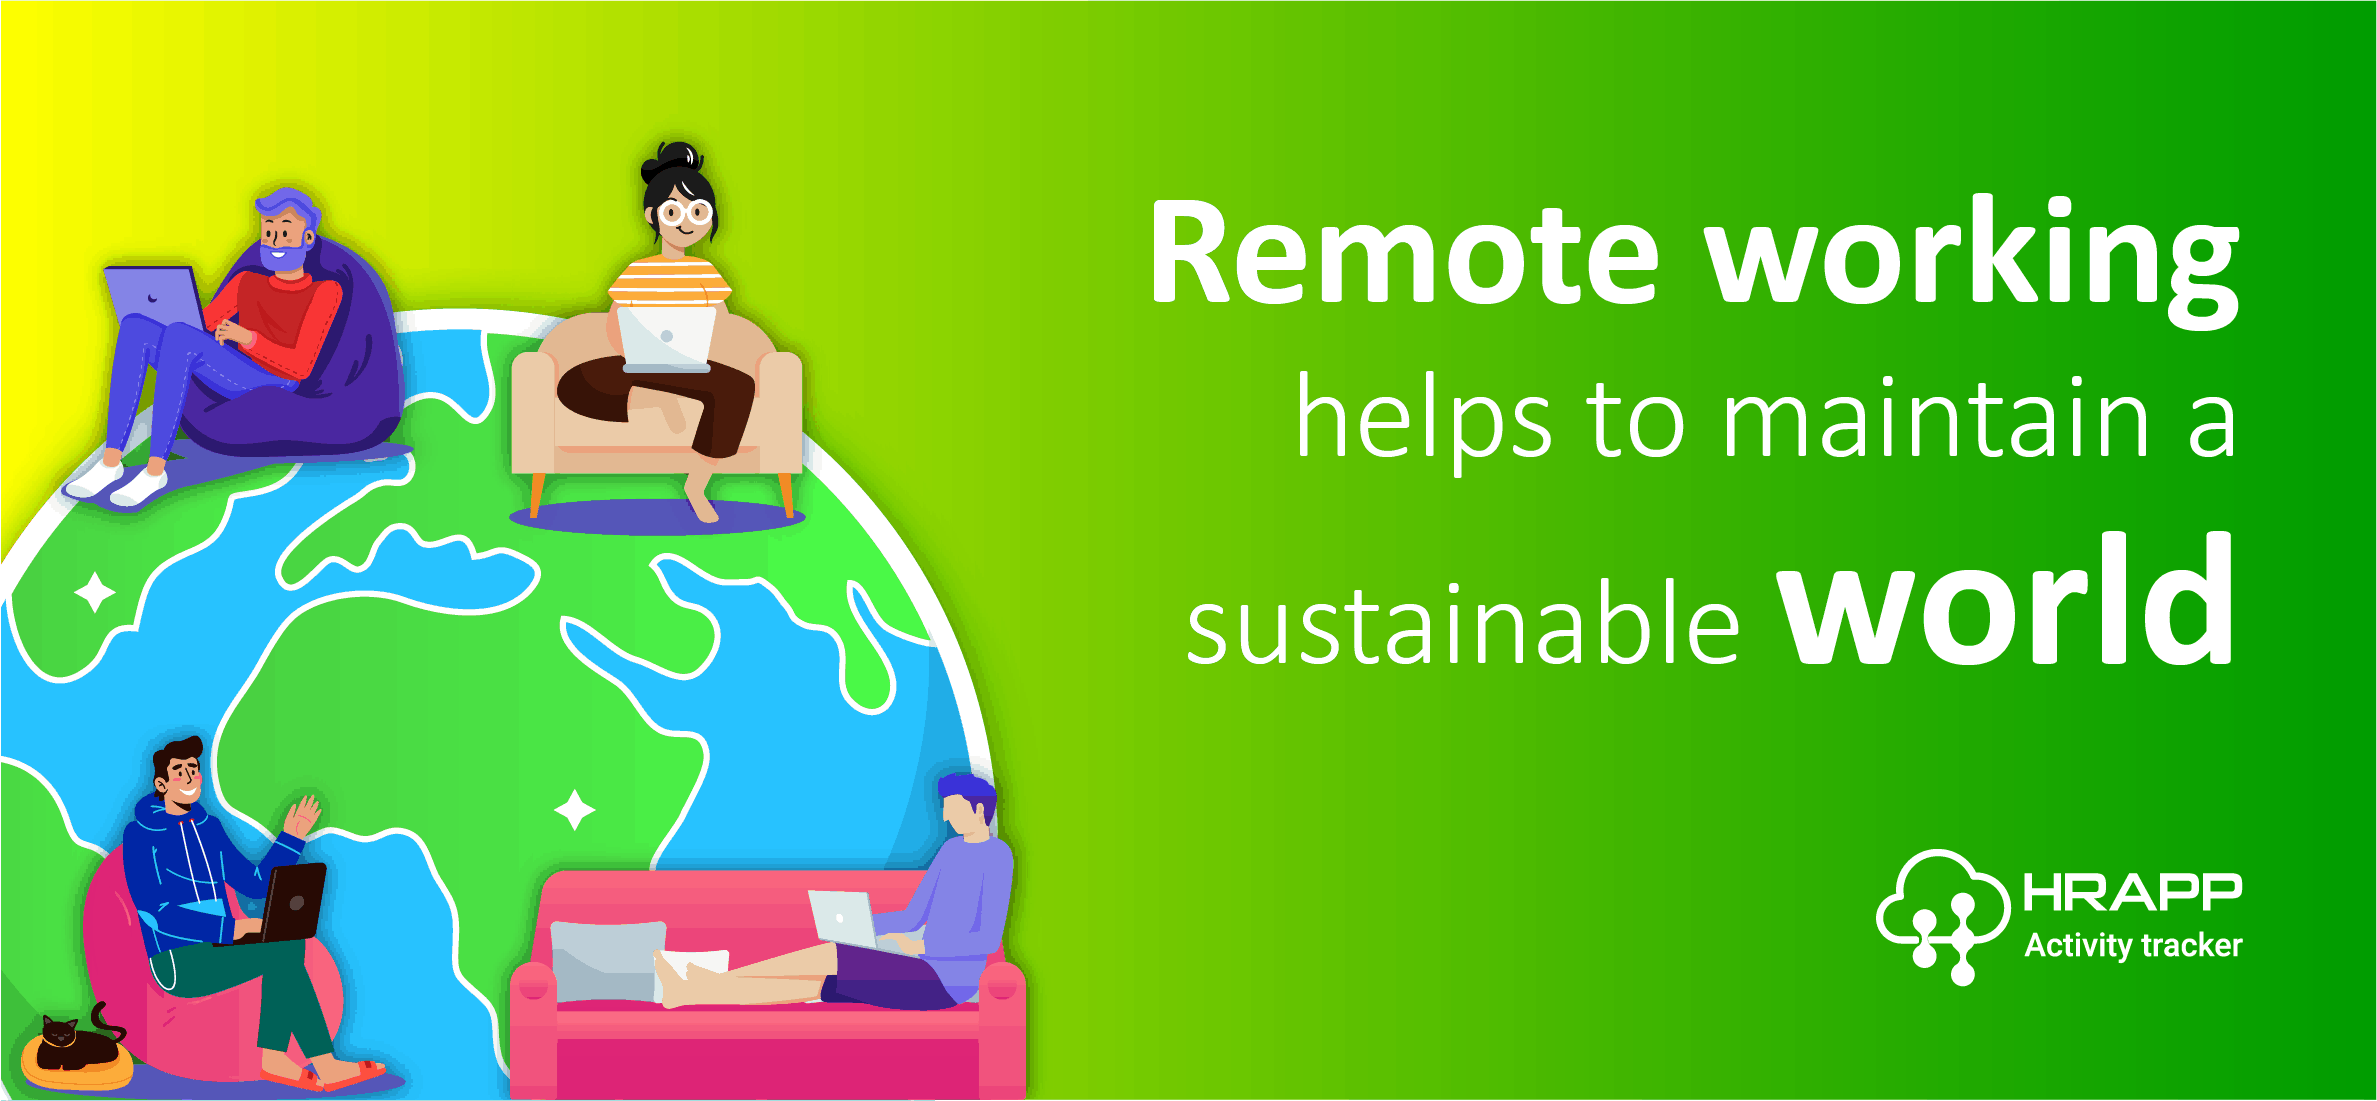 Remote Working helps to maintain a sustainable world